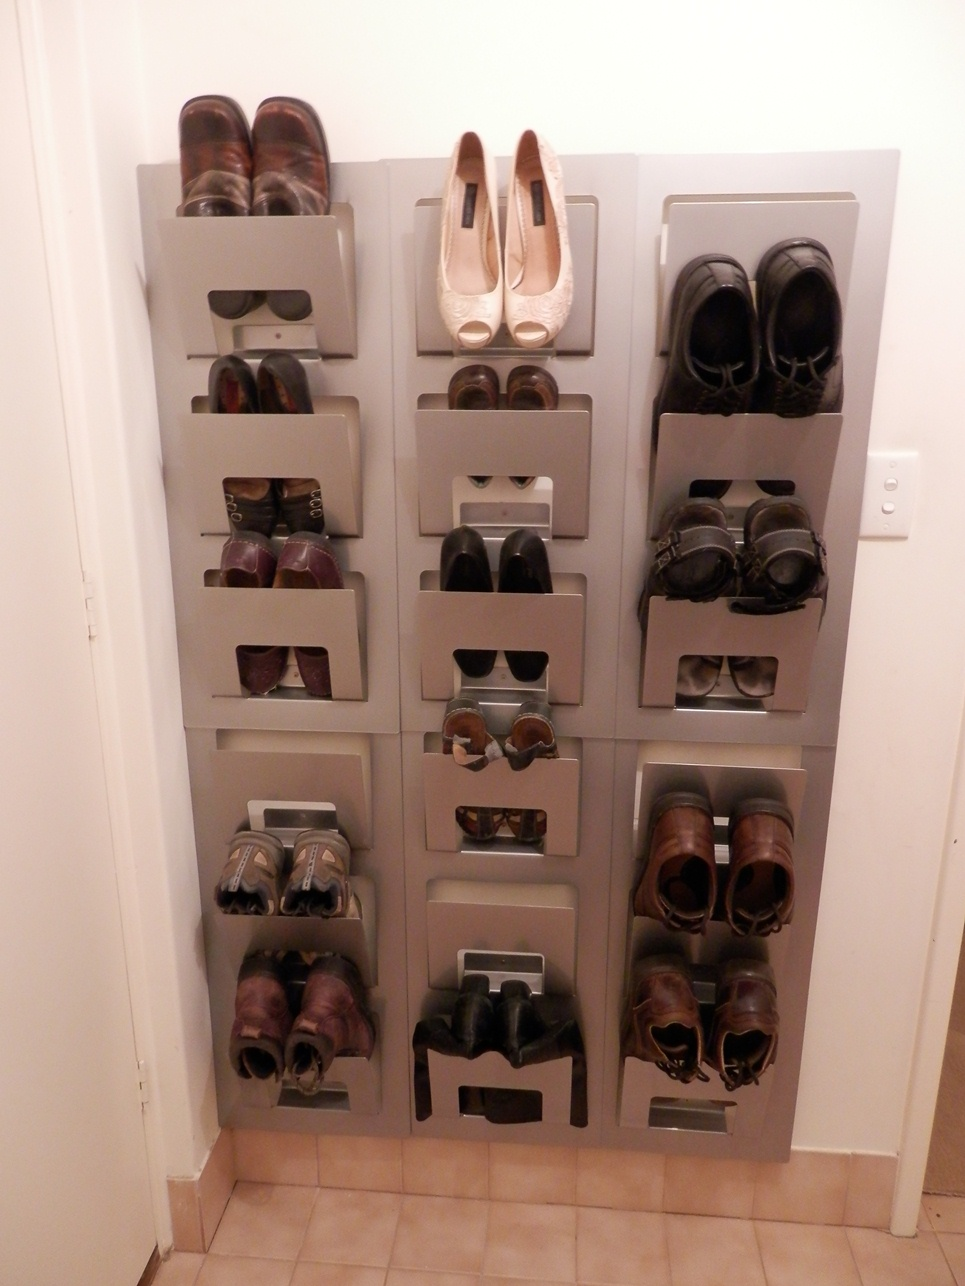 The ten best IKEA hacks shoe storage ideas - Living in a shoebox